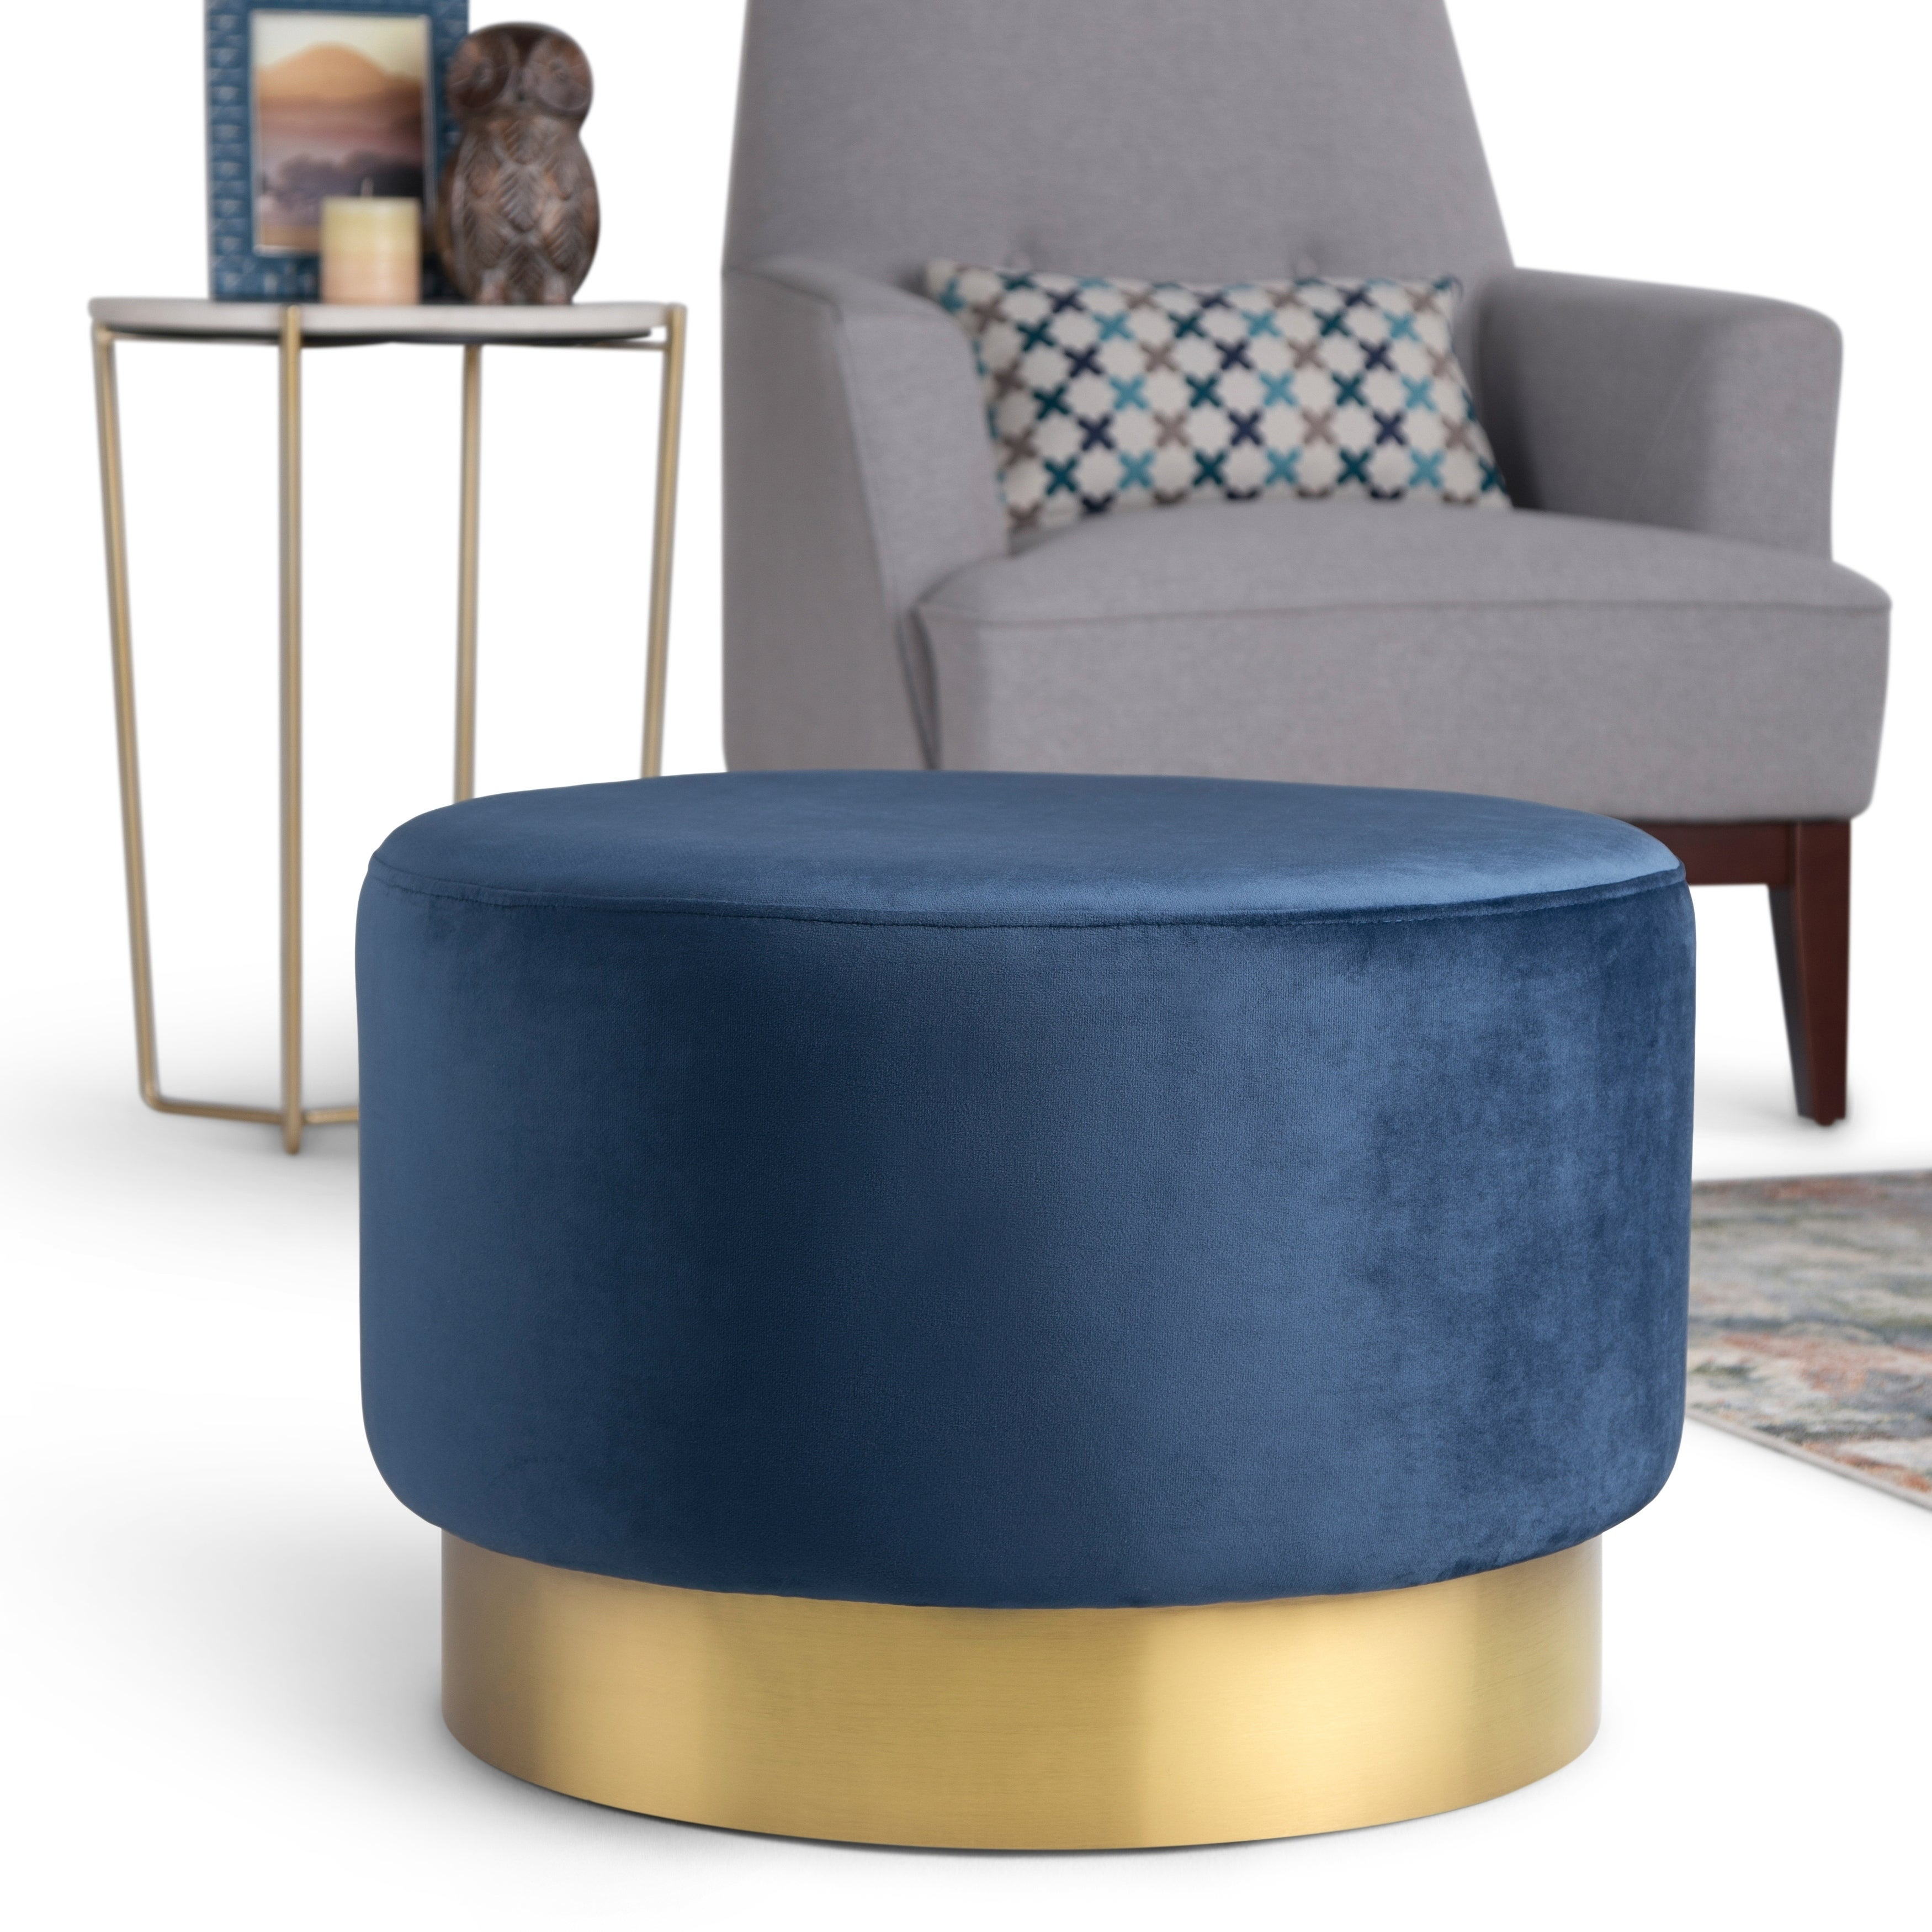 Silver Orchid Sussin Large Round Ottoman Footstool On Sale Overstock 26056626